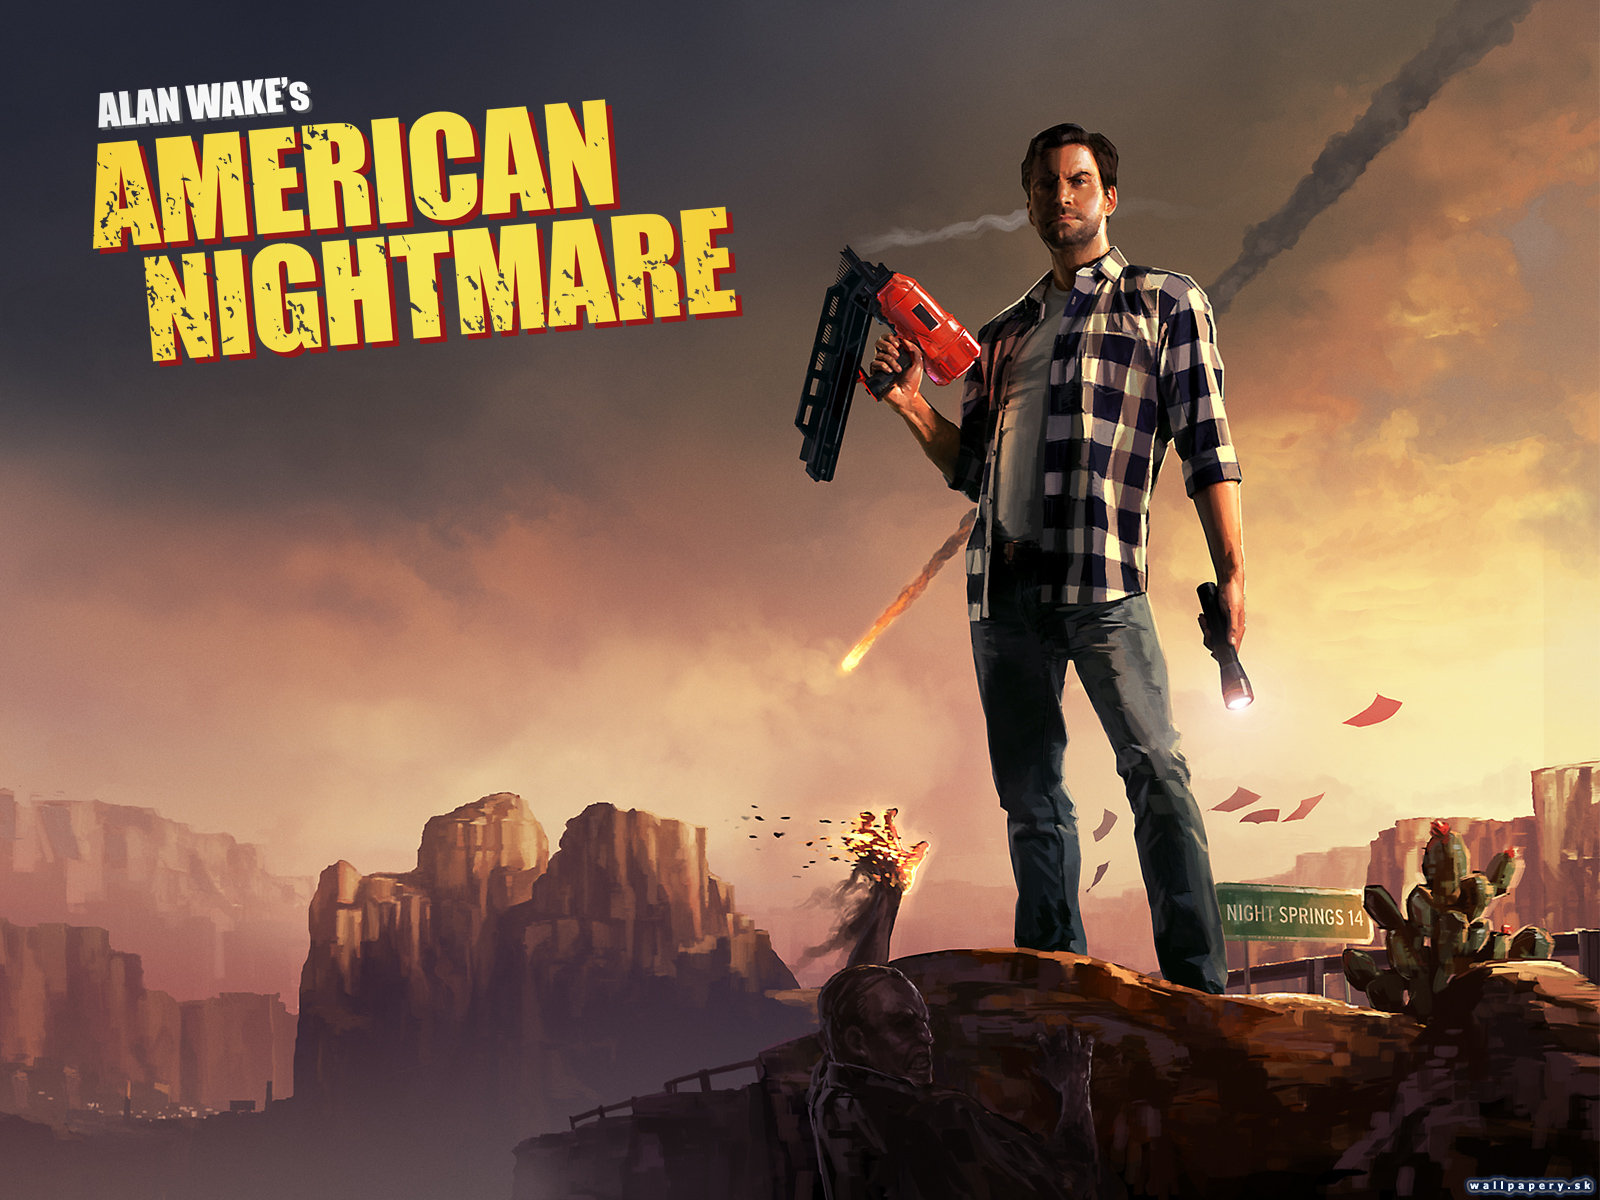 Alan Wake's American Nightmare - wallpaper 1